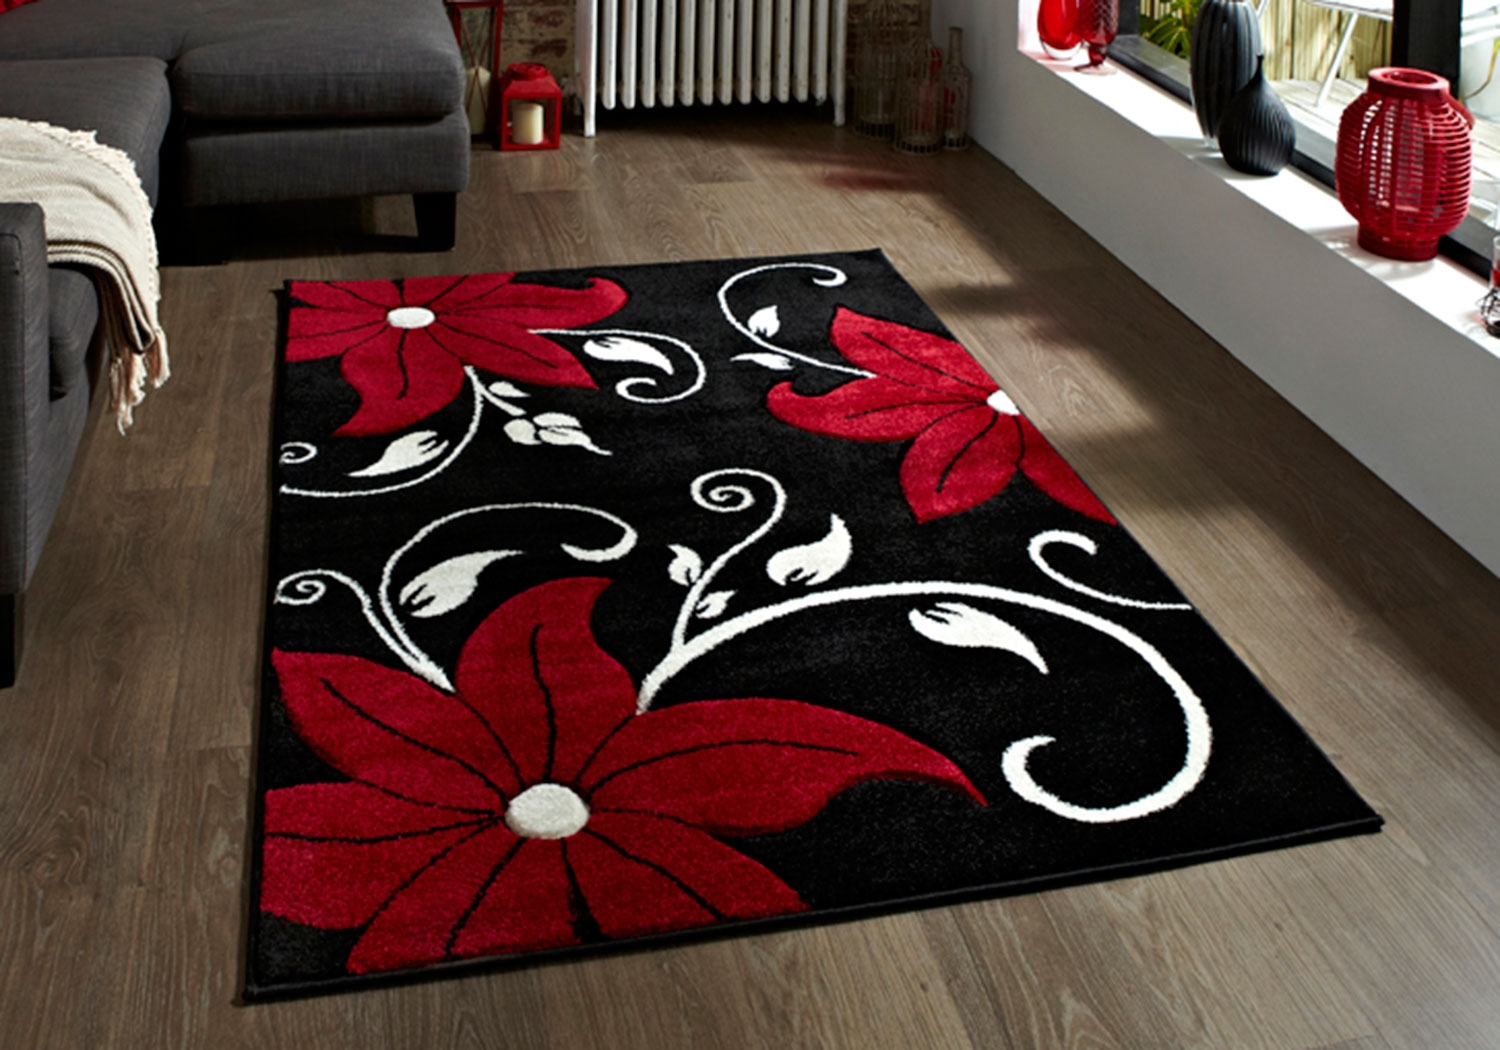 Red And Green Rugs Roselawnlutheran Throughout Small Red Rugs (View 5 of 15)